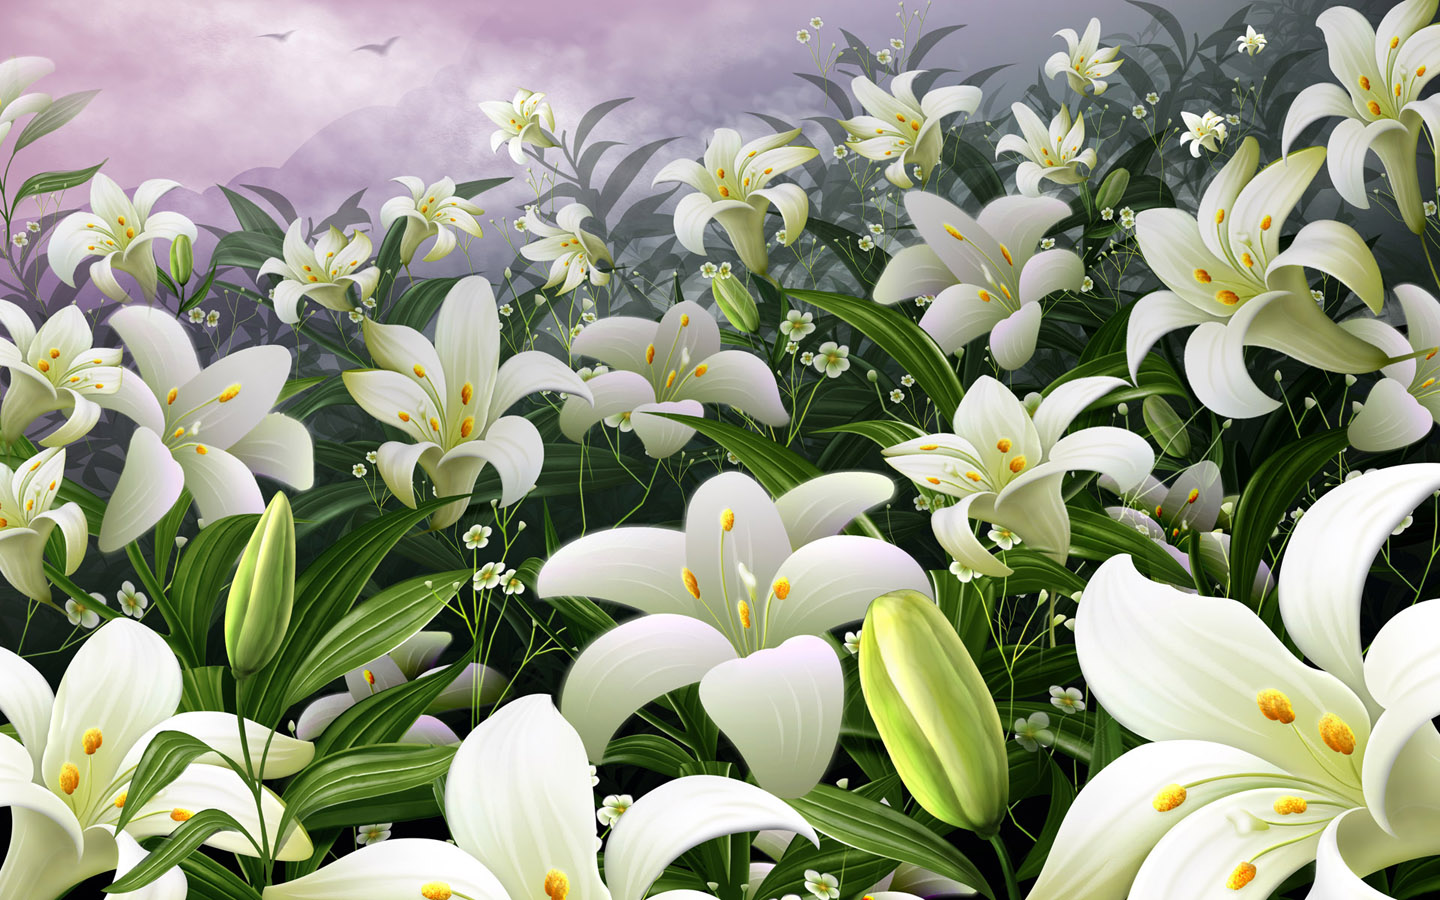 Flowers wallpapers white lilies flowers wallpapers for Jardin de fleurs blanches